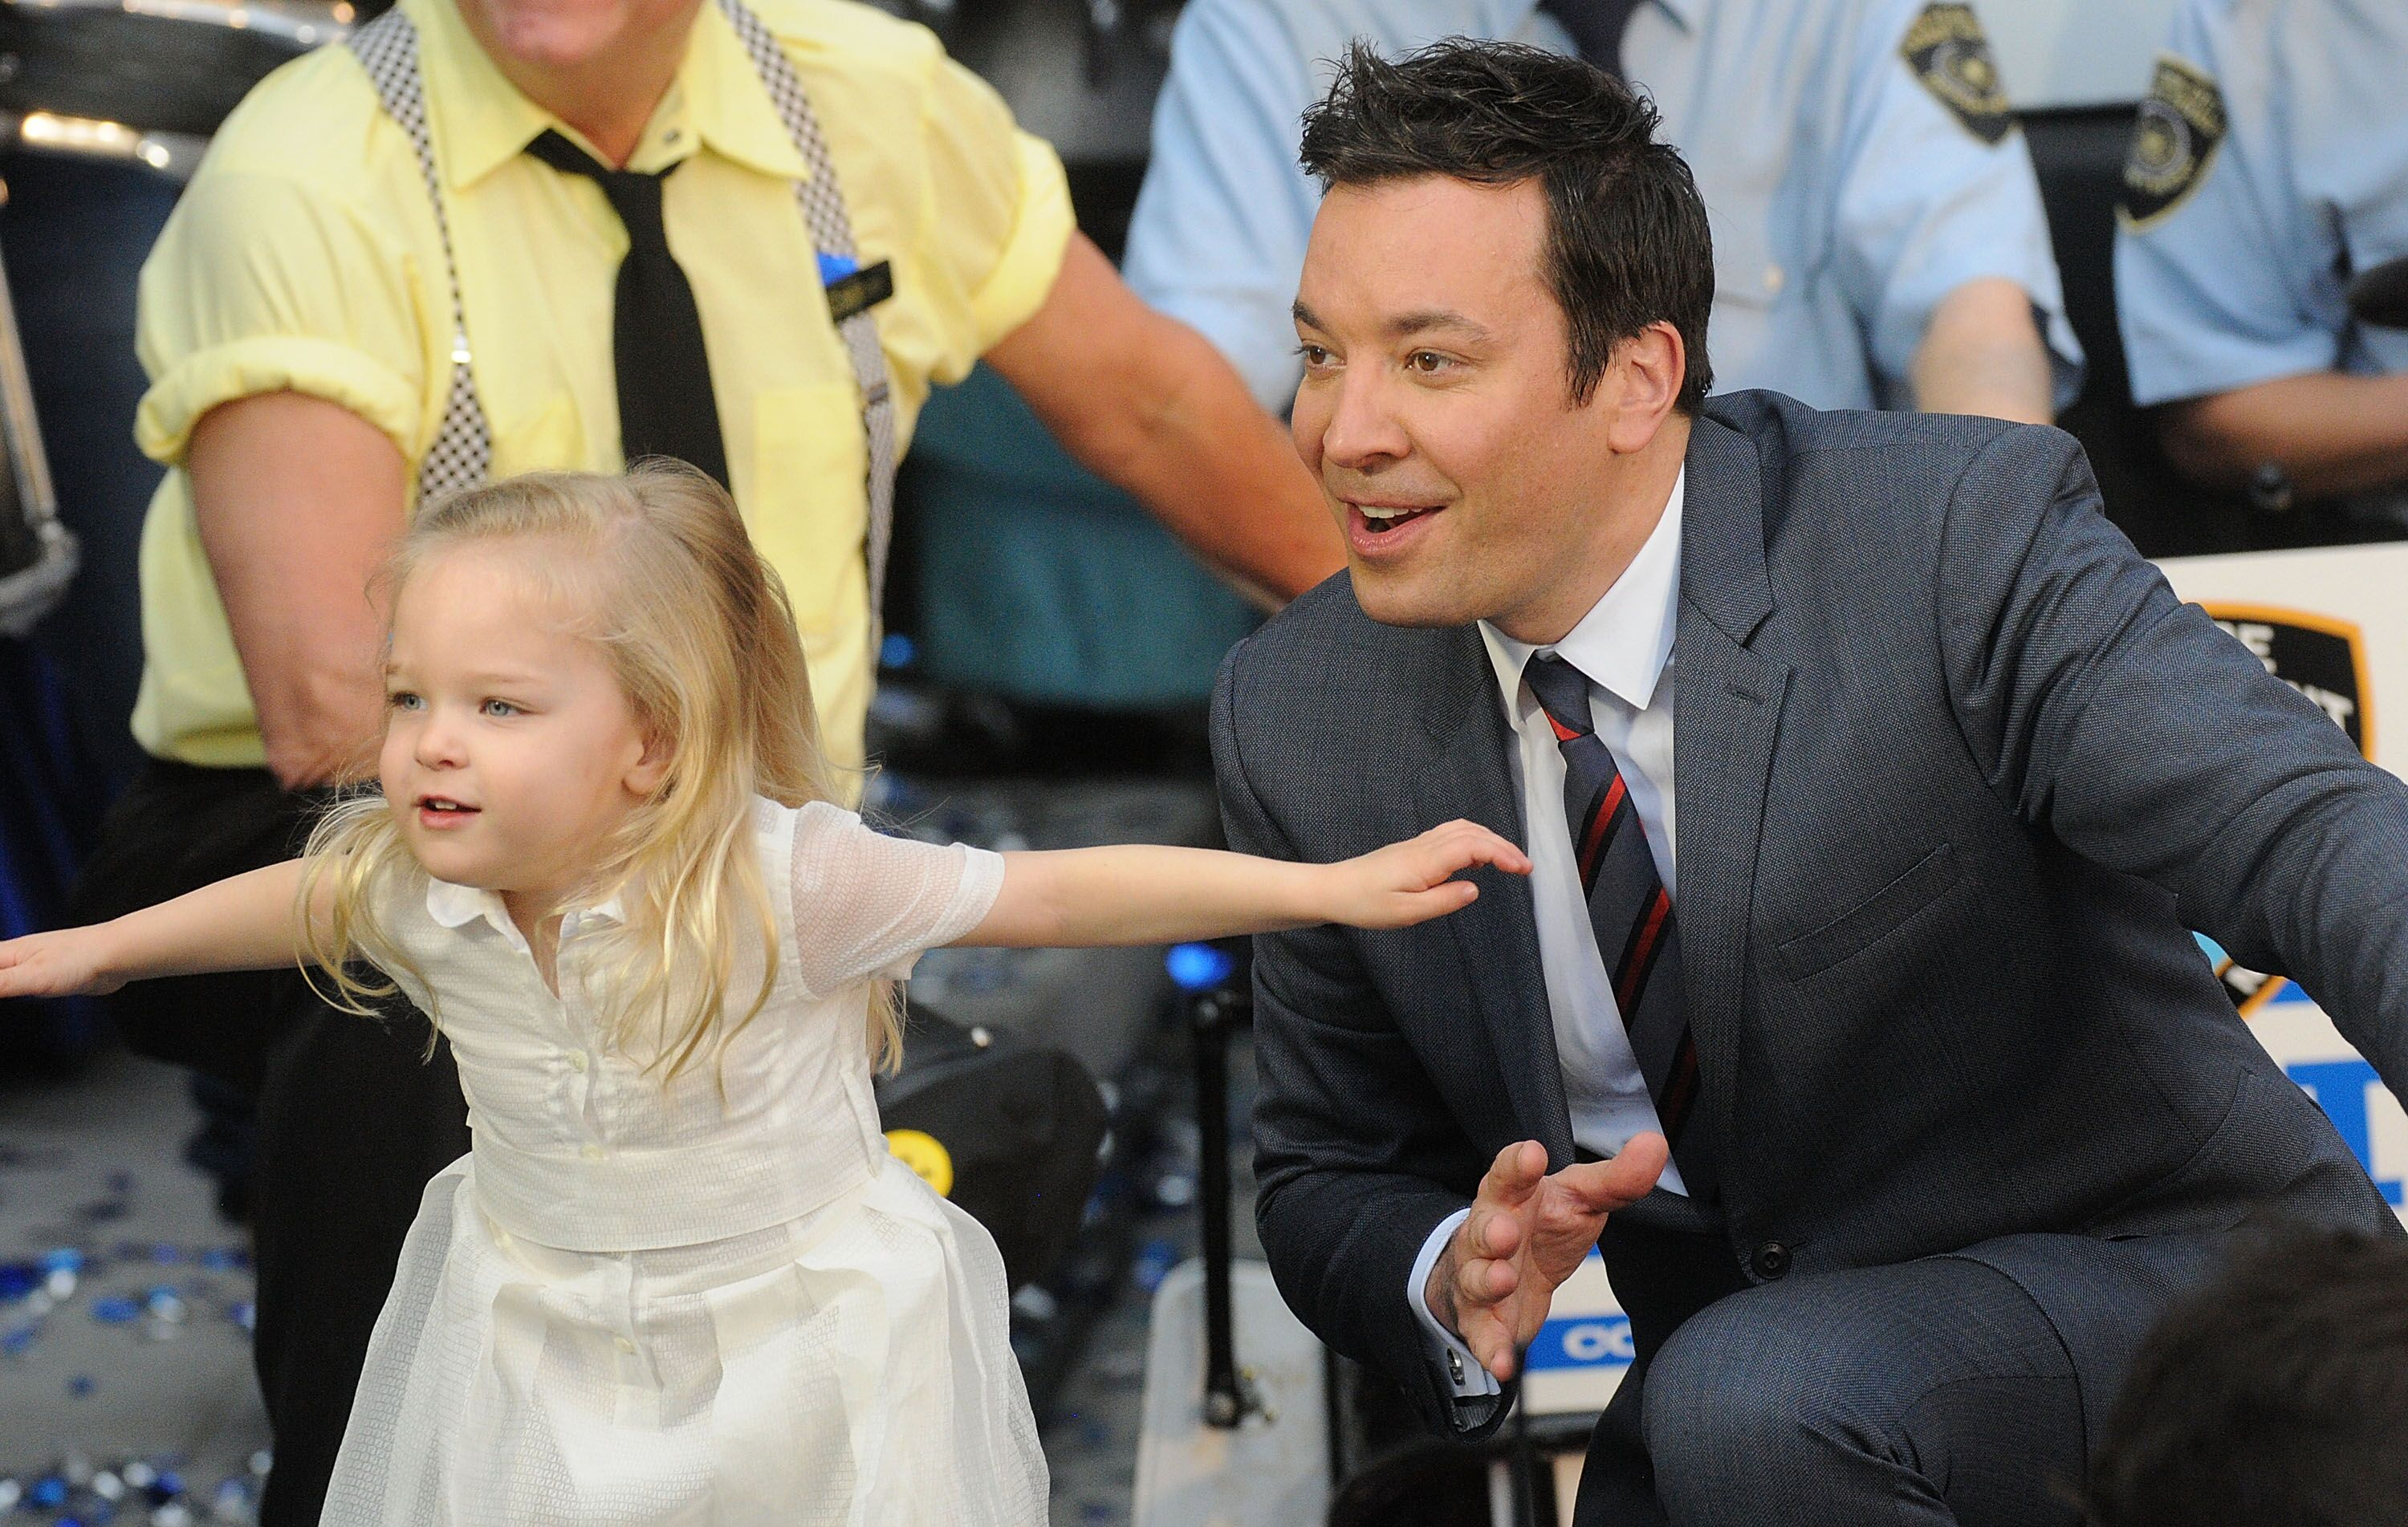 """Jimmy Fallon dances with his daughter Winnie Rose during the Grand Opening of Universal Orlando's Newest Attraction """"Race Through New York Starring Jimmy Fallon"""" at Universal Orlando on April 6, 2017. 